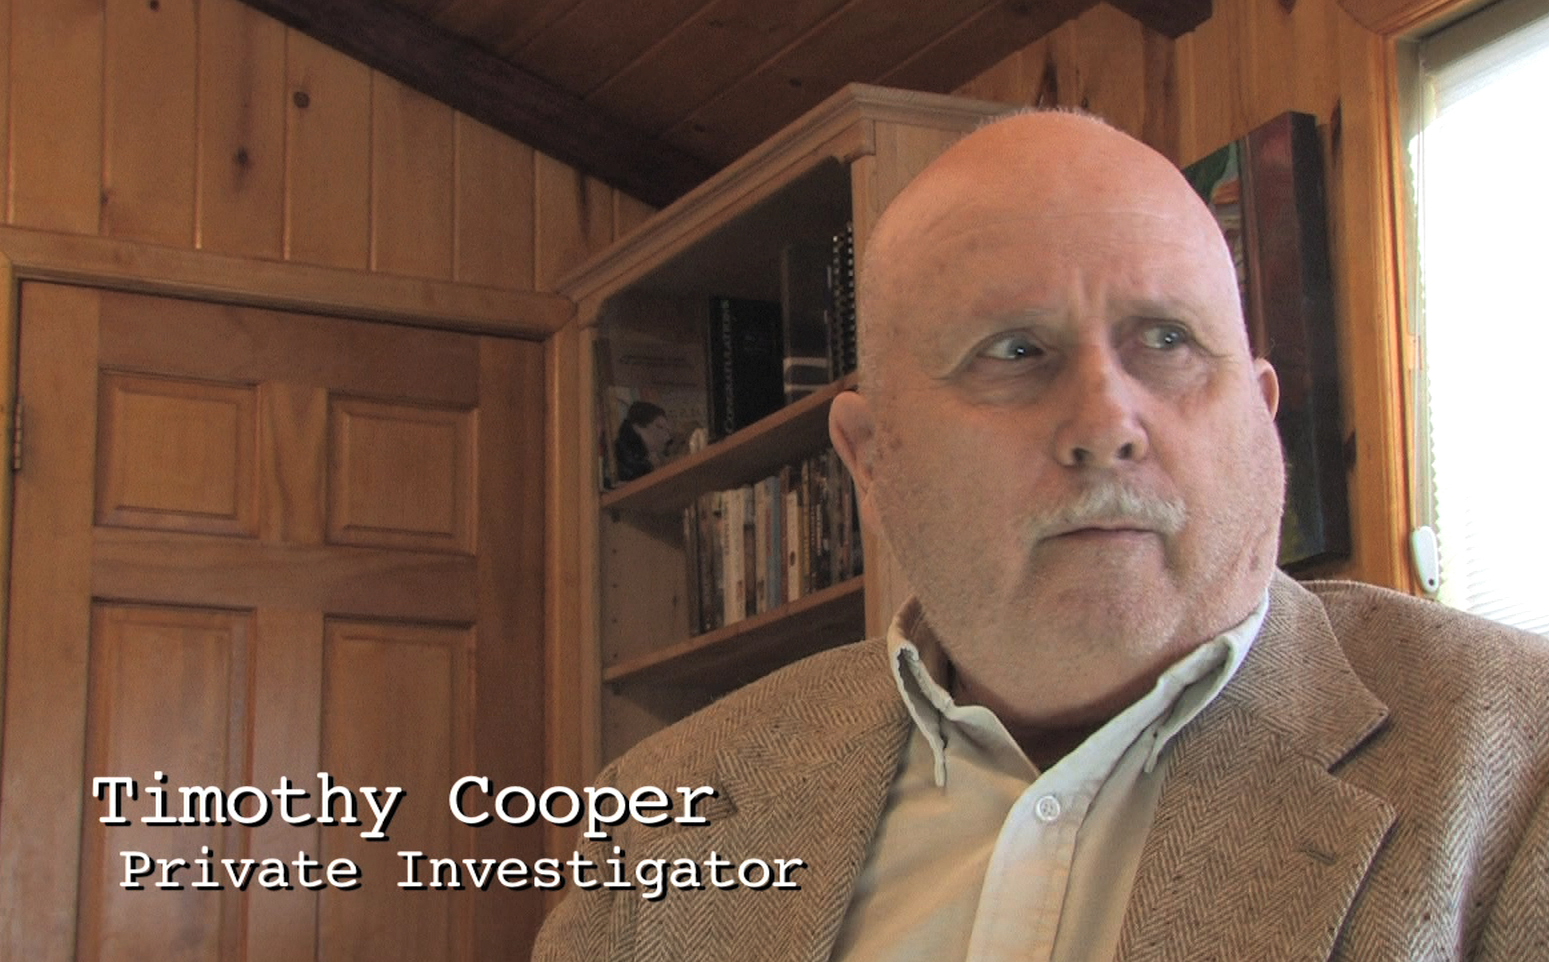 TIMOTHY COOPER